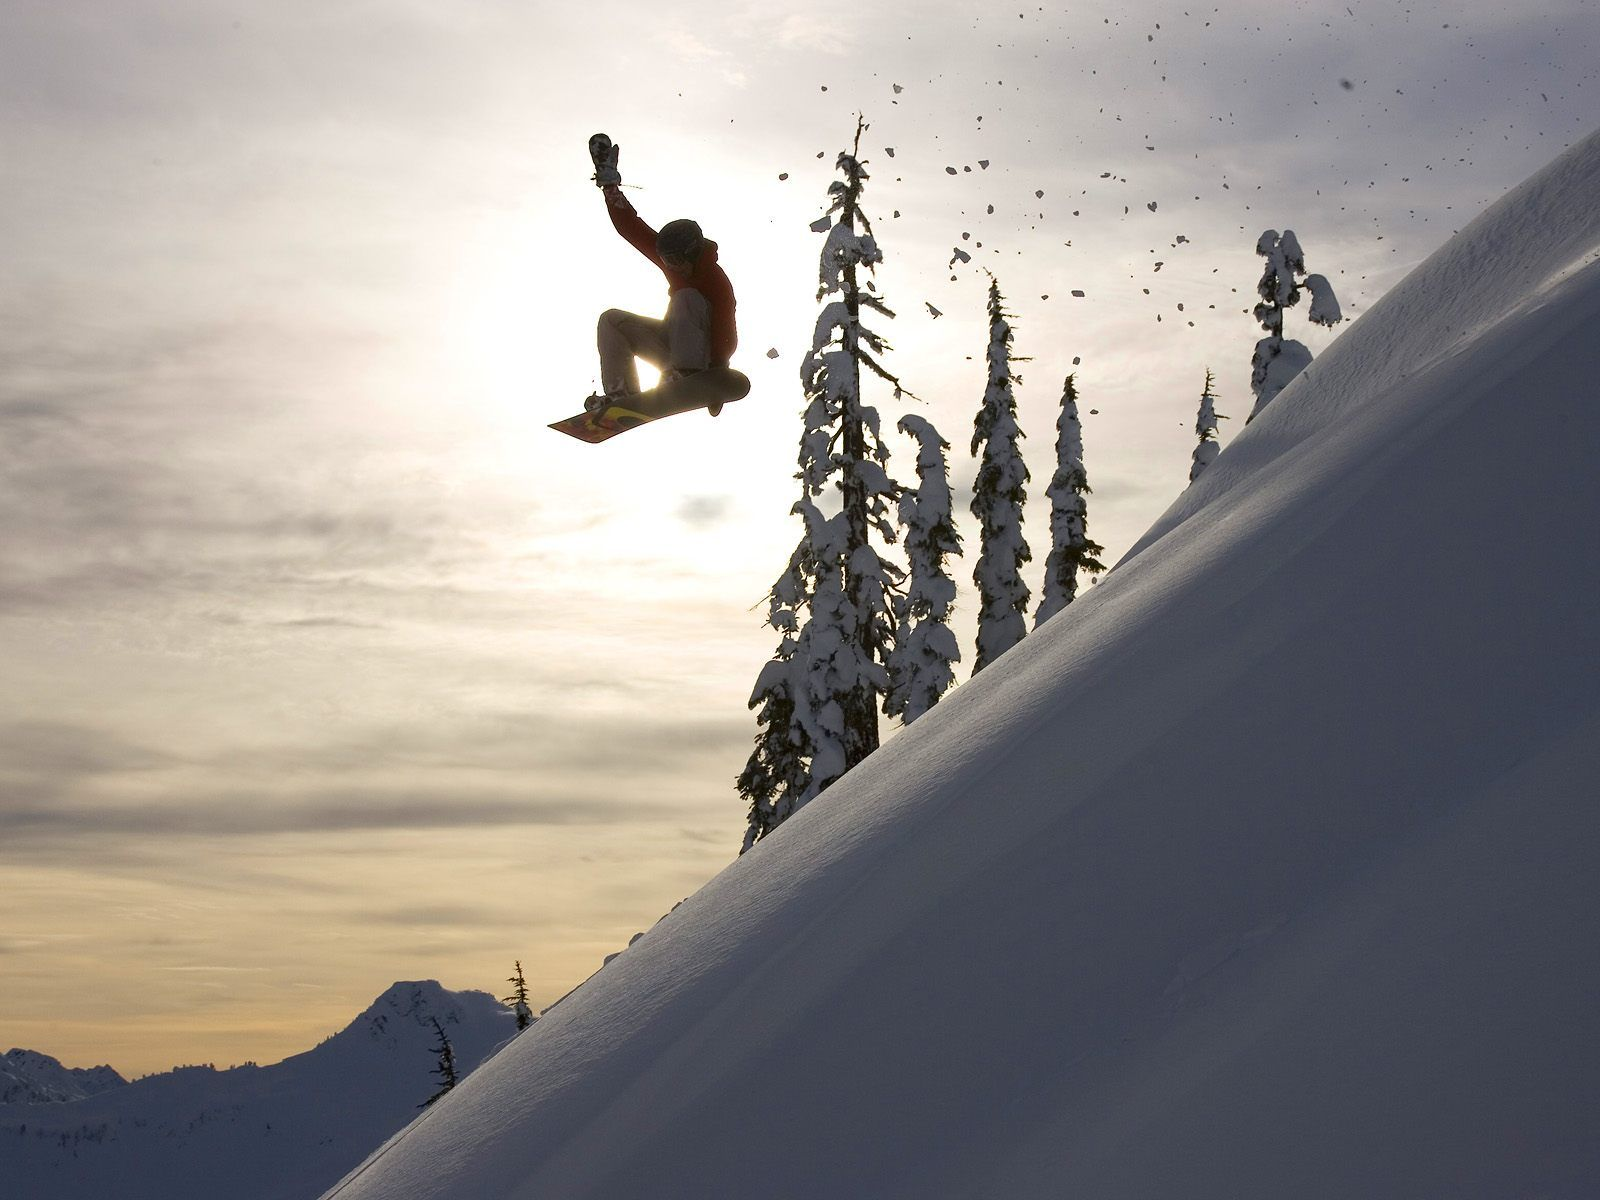 snowboarding | snowboarding wallpapers, photo, images, picture